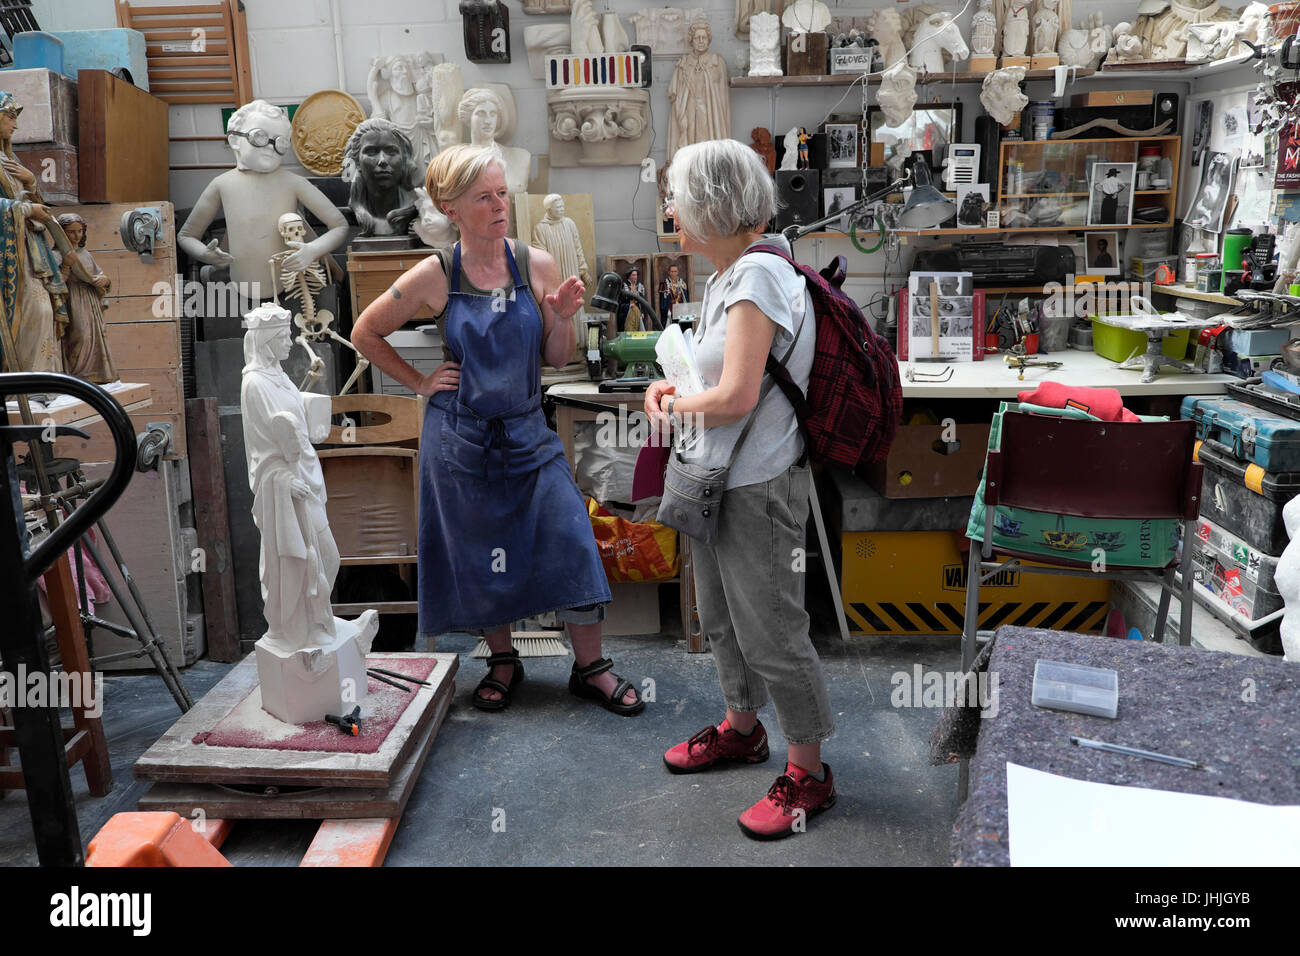 A visitor to stone carver Nina Bilbey's sculpture studio interior open to visitors at the E17 Art Trail 2017 - Stock Image